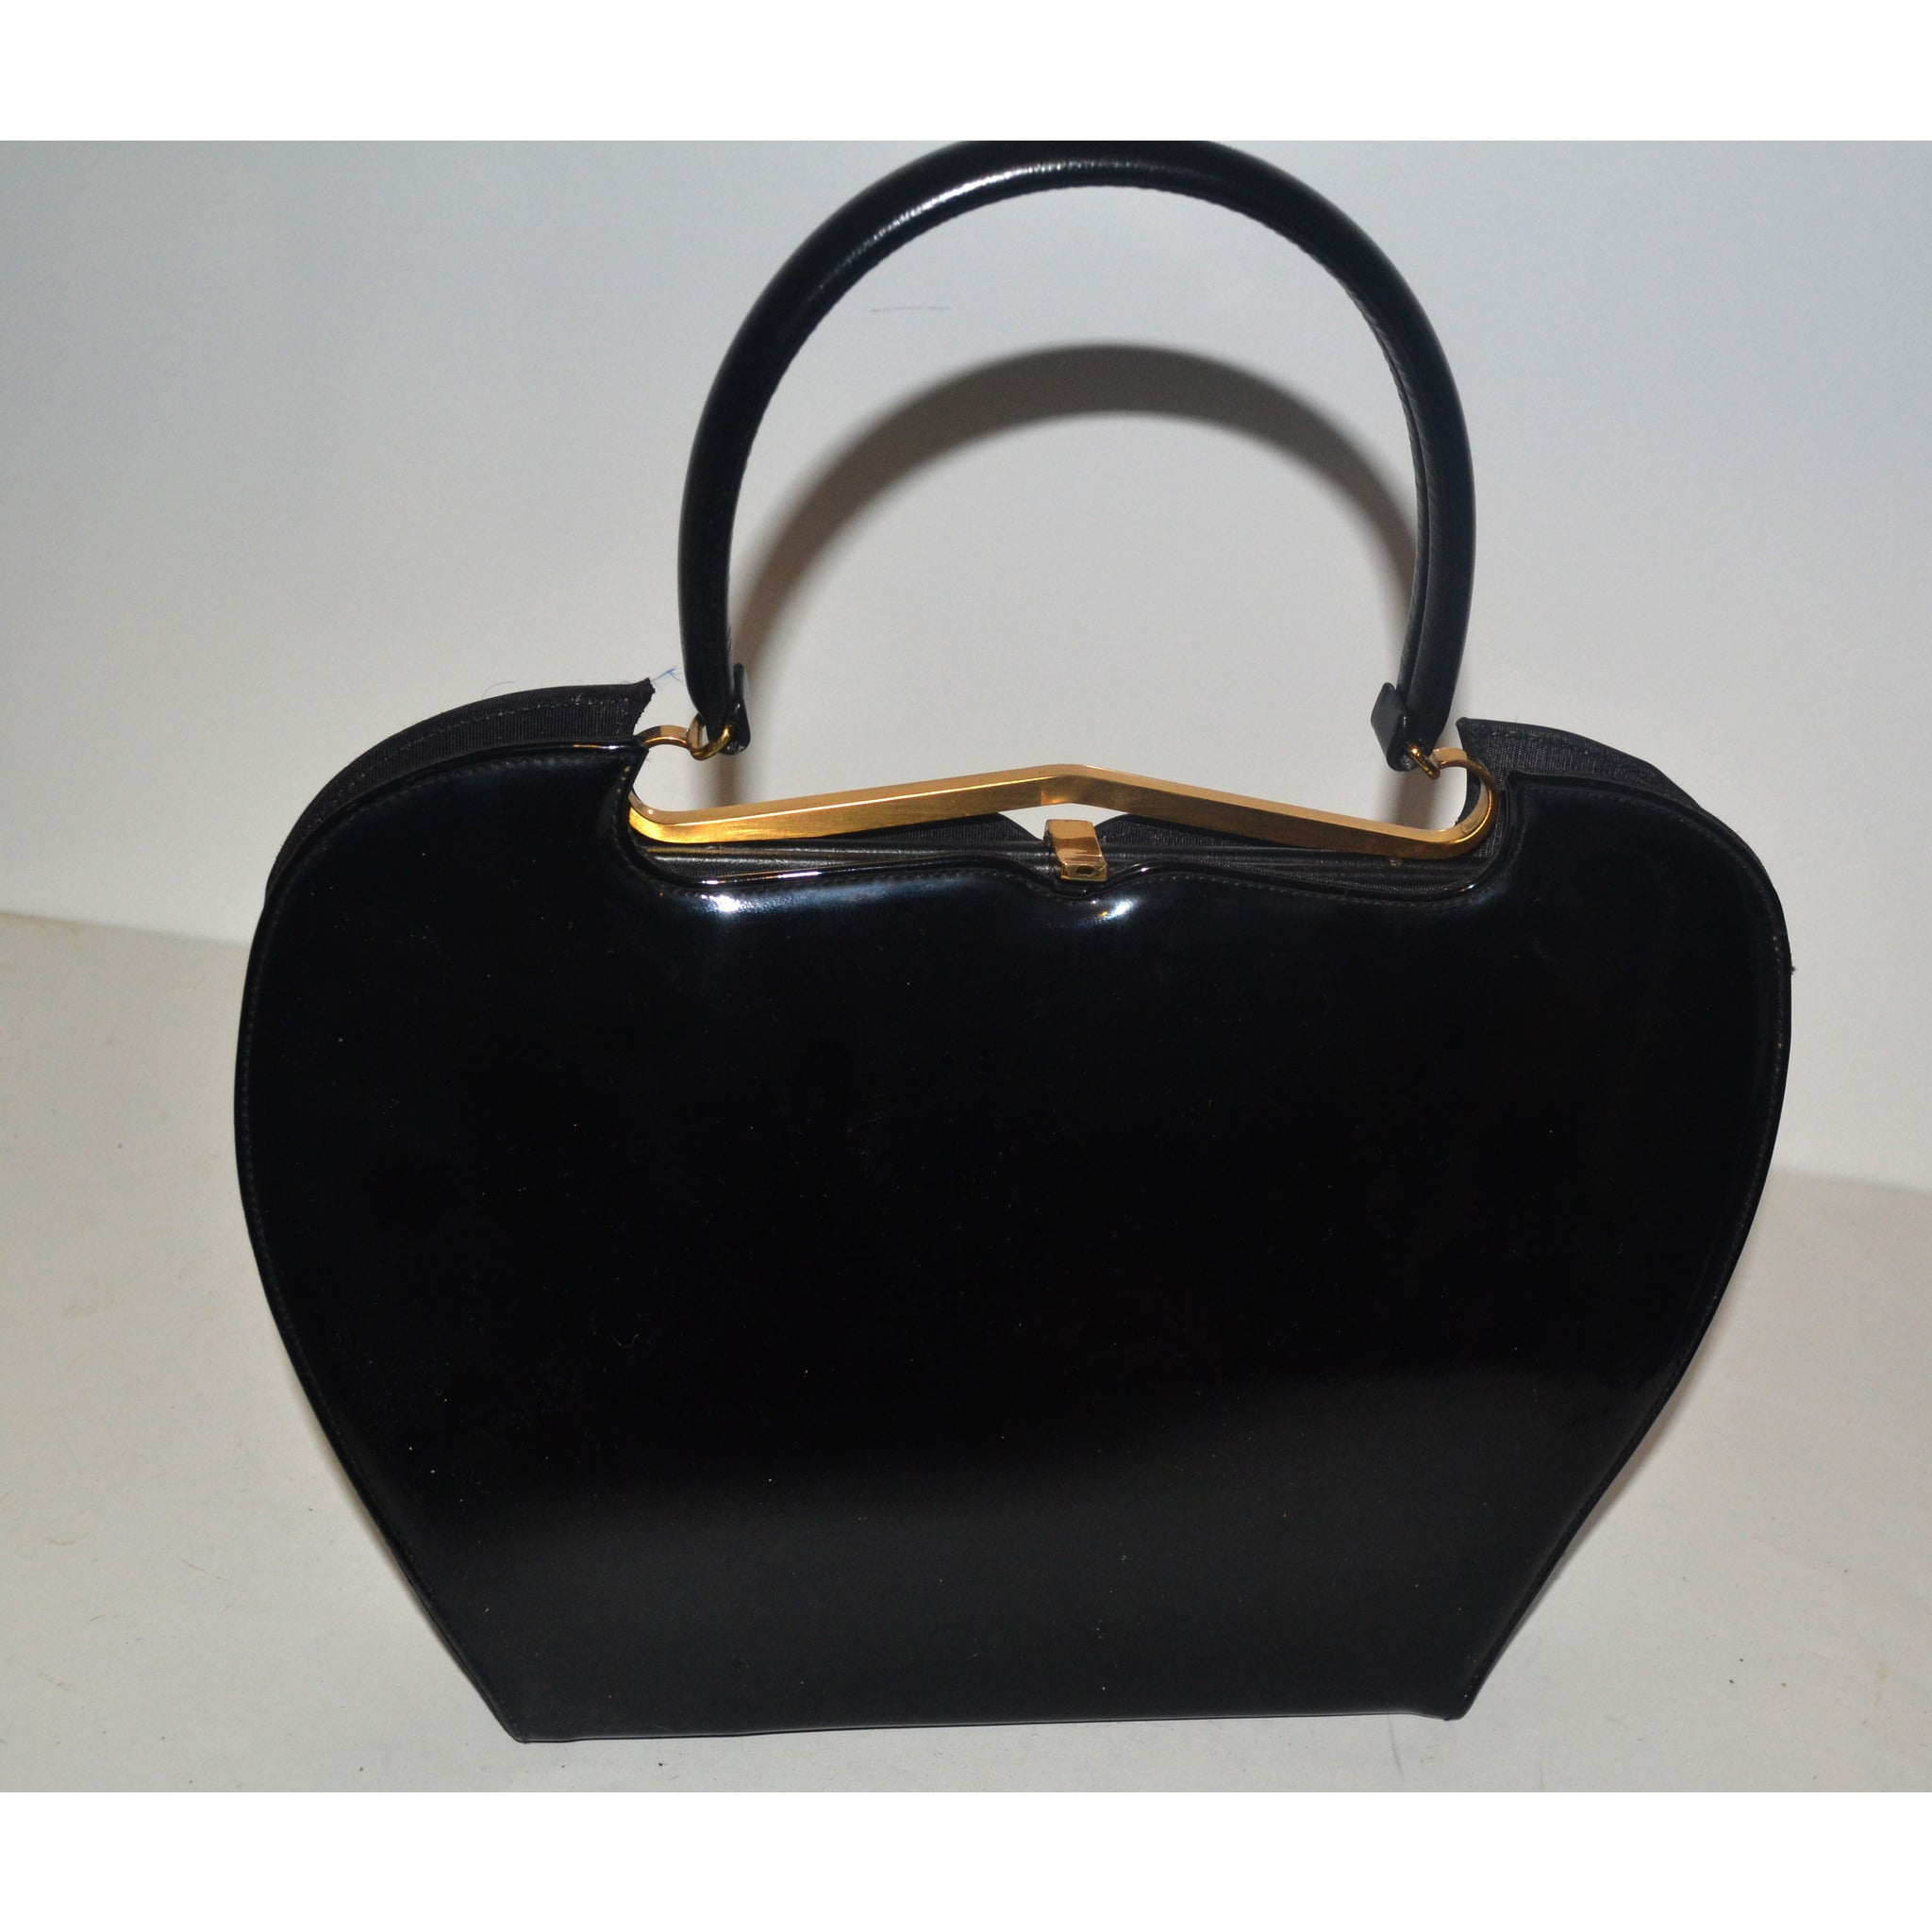 Vintage Sleek Black Patent Curved Purse